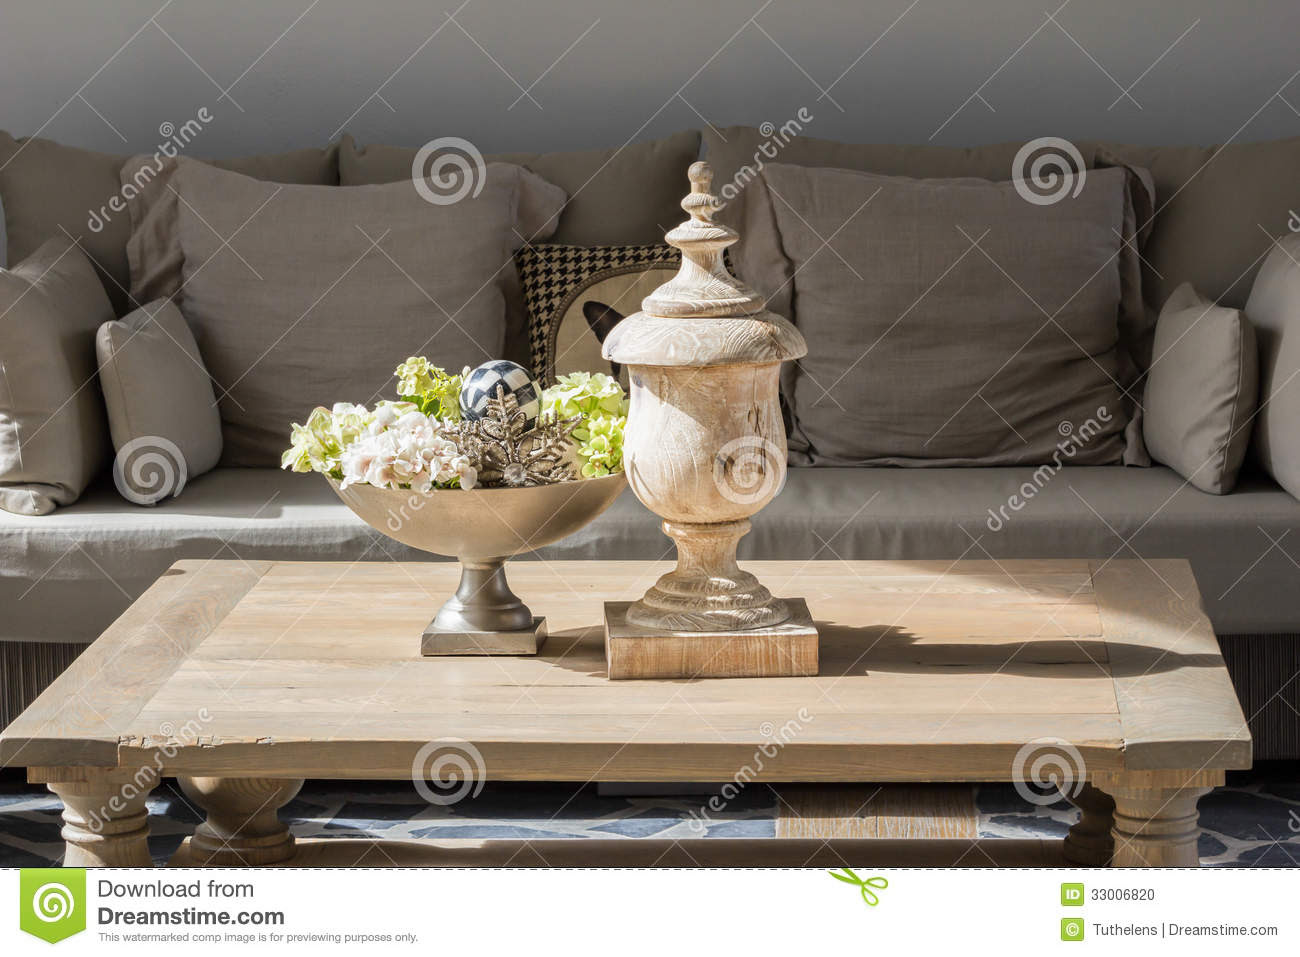 Vintage Interior Design Stock Photo - Image: 33006820